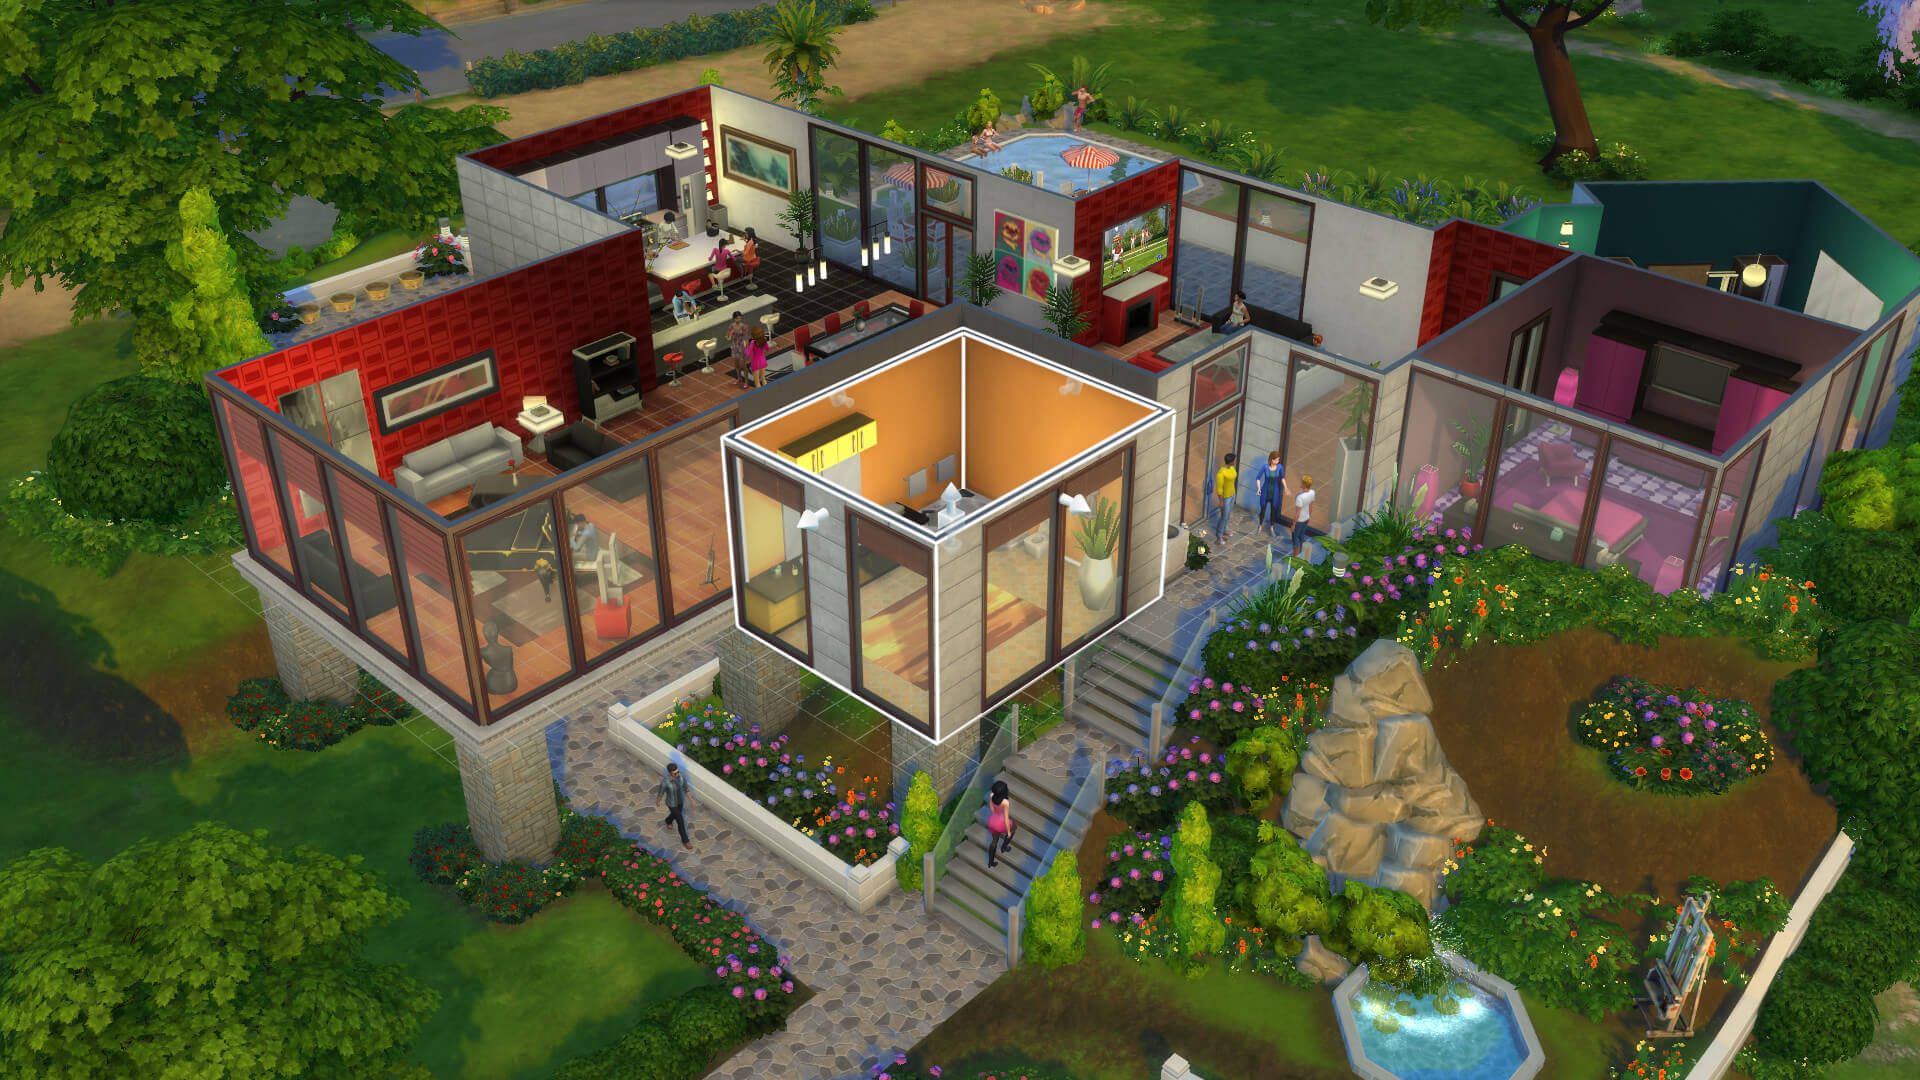 House design and life simulations makes The Sims extremely popular